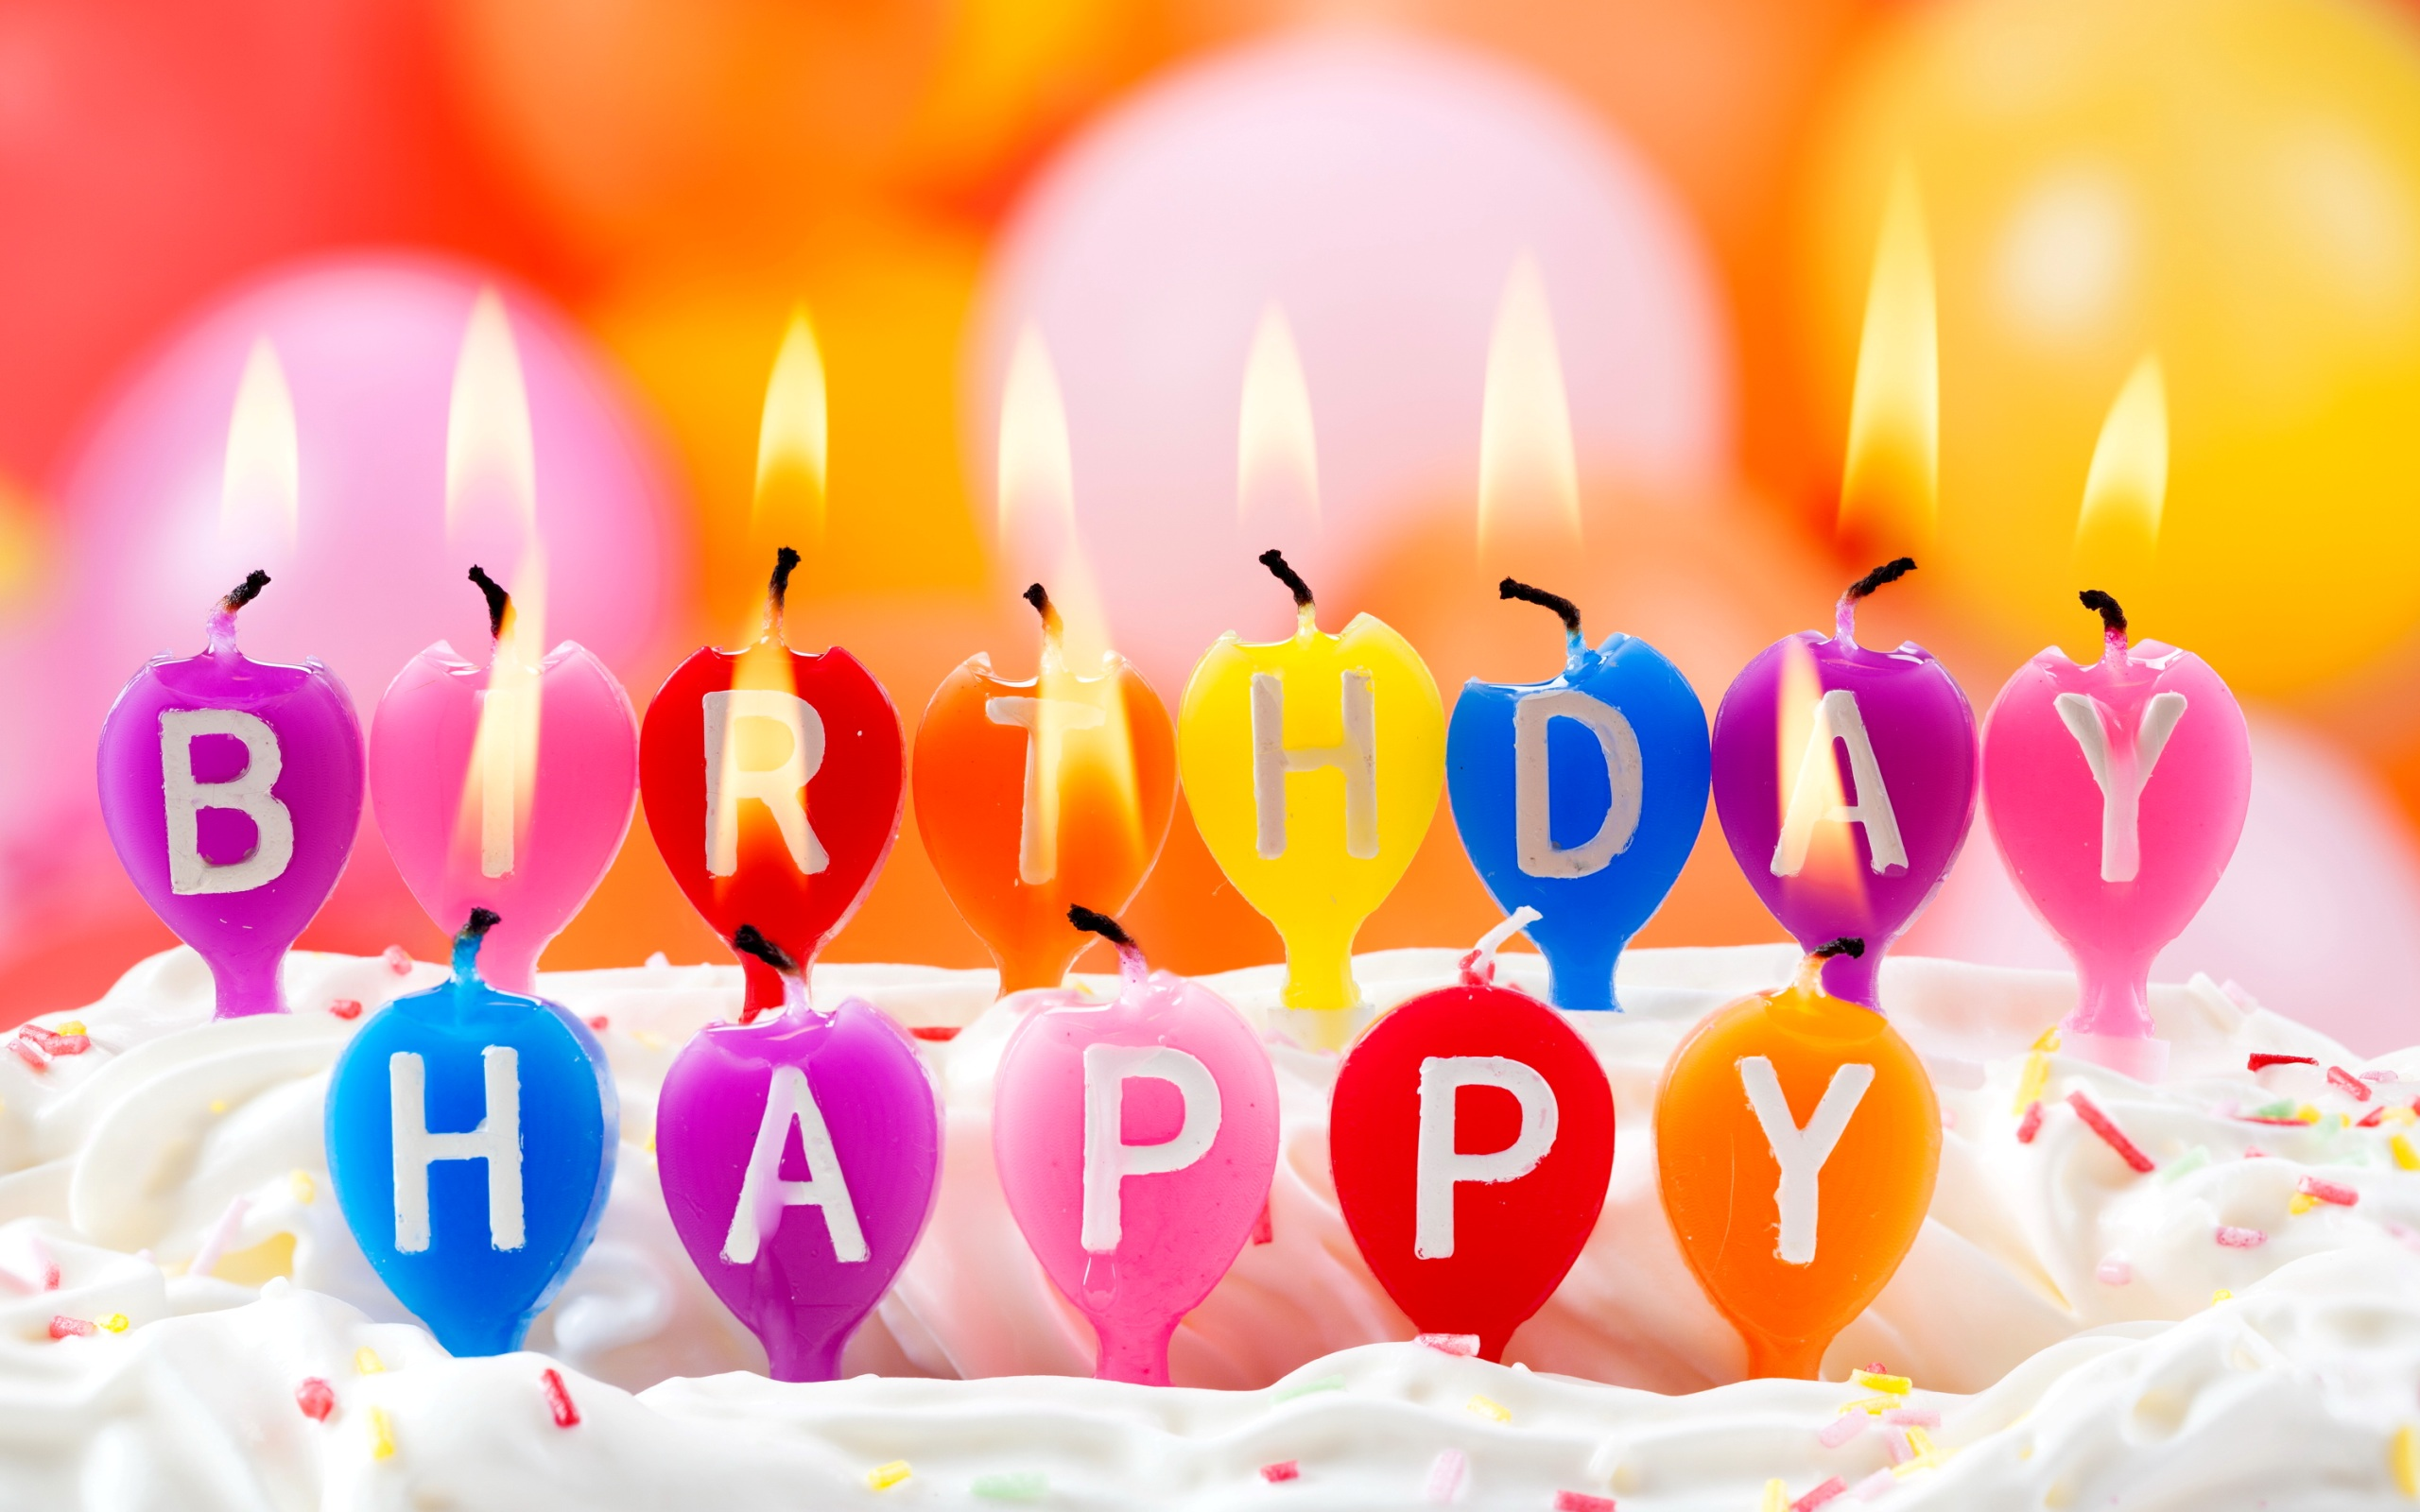 hd happy birthday wishes wallpapers ; happy-birthday-Images-HD